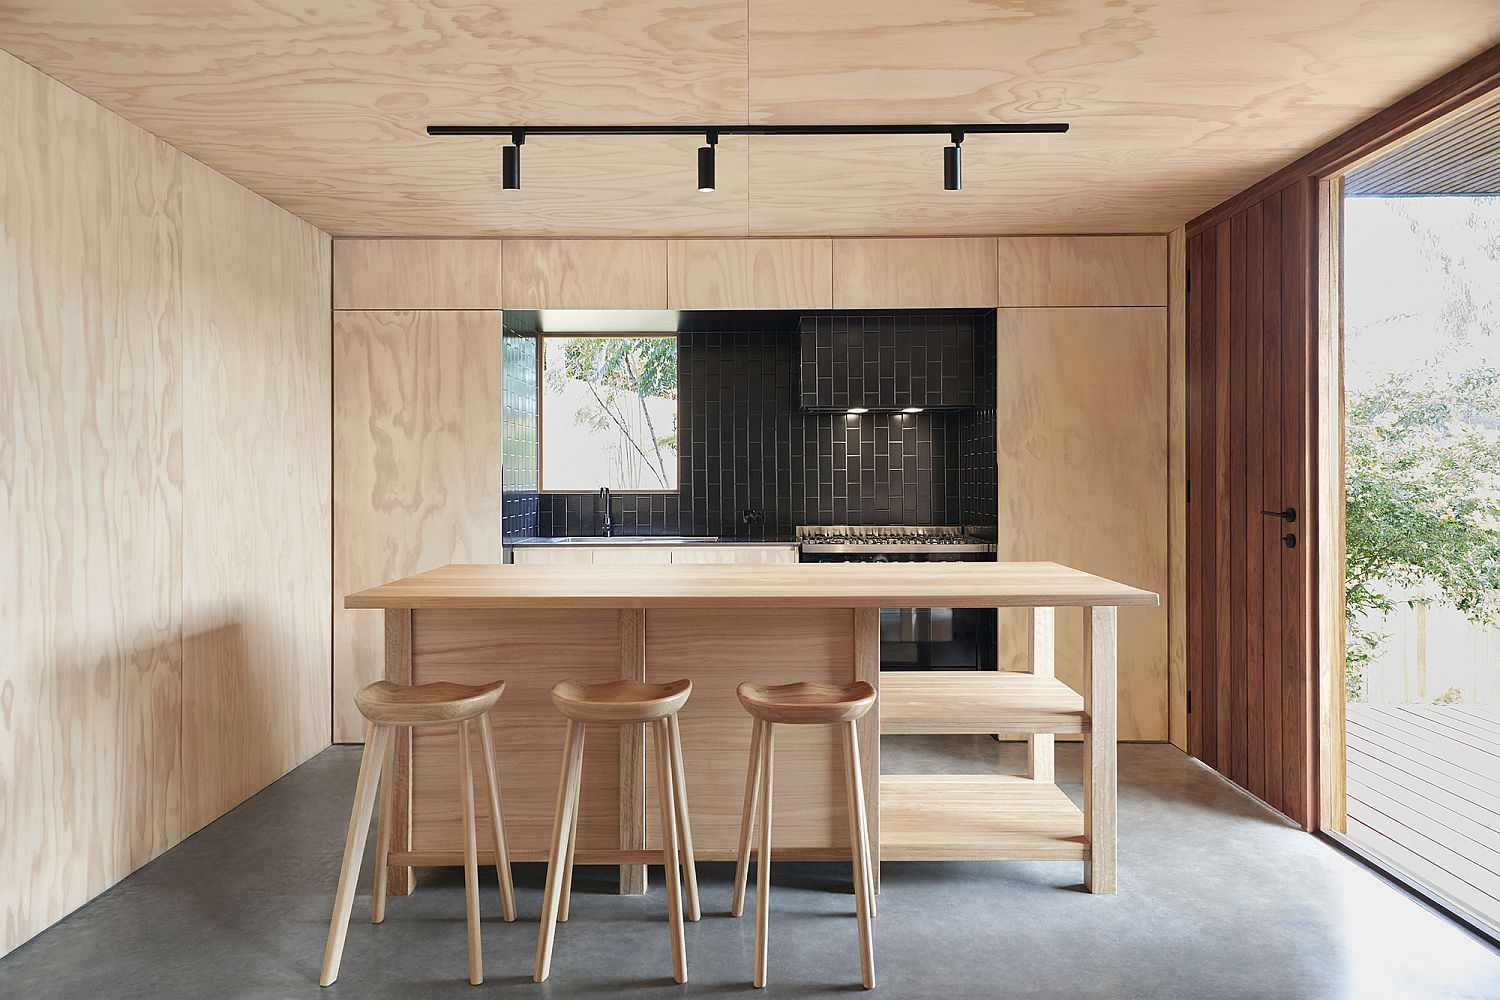 Fabulous little kitchen with polished concrete floor and plywood cabinets and walls